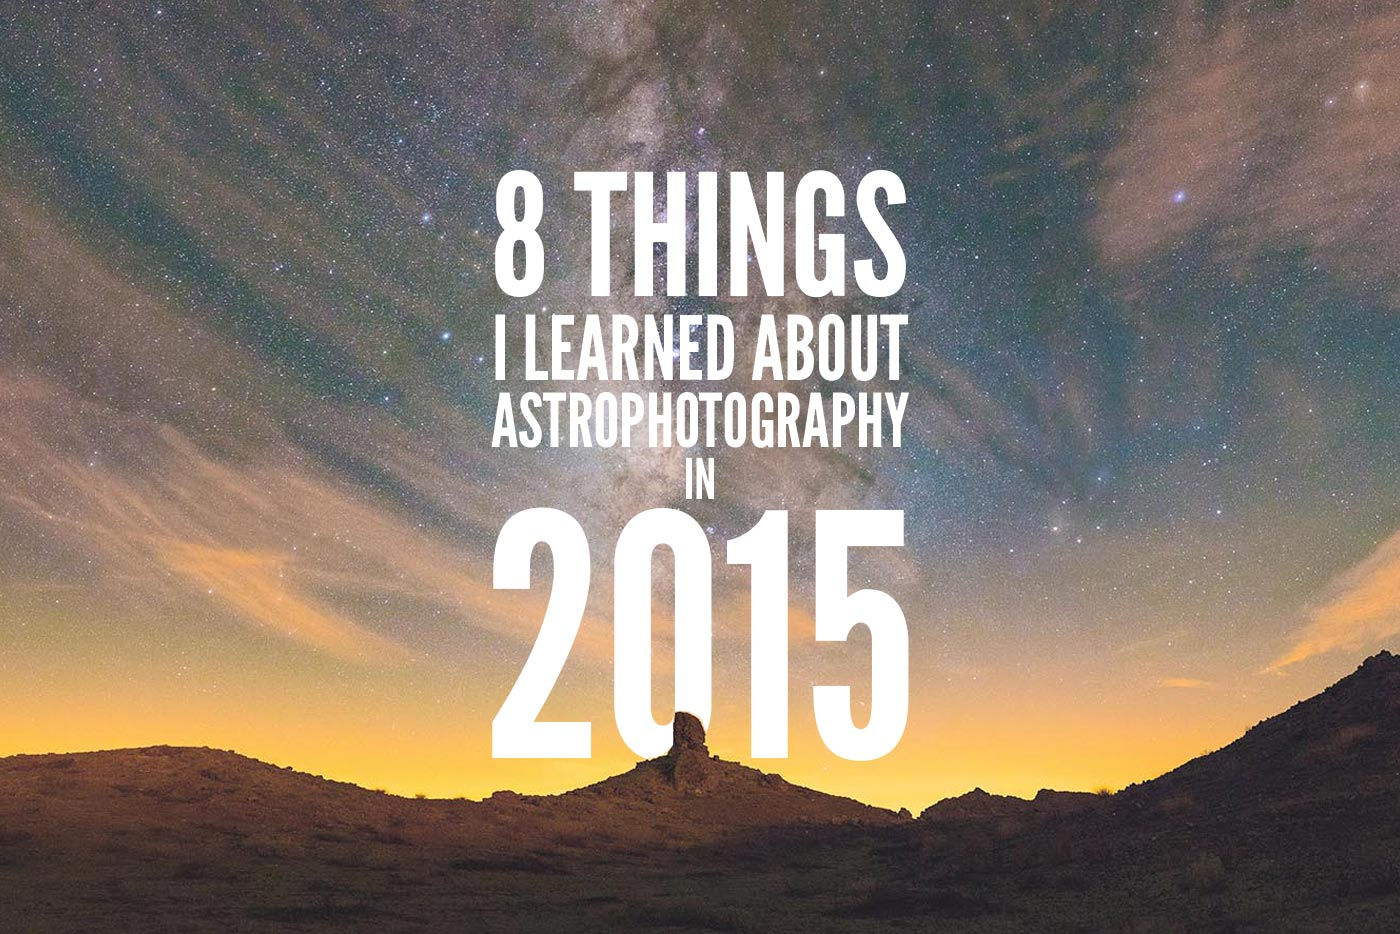 8 Things I Learned About Astrophotography in 2015